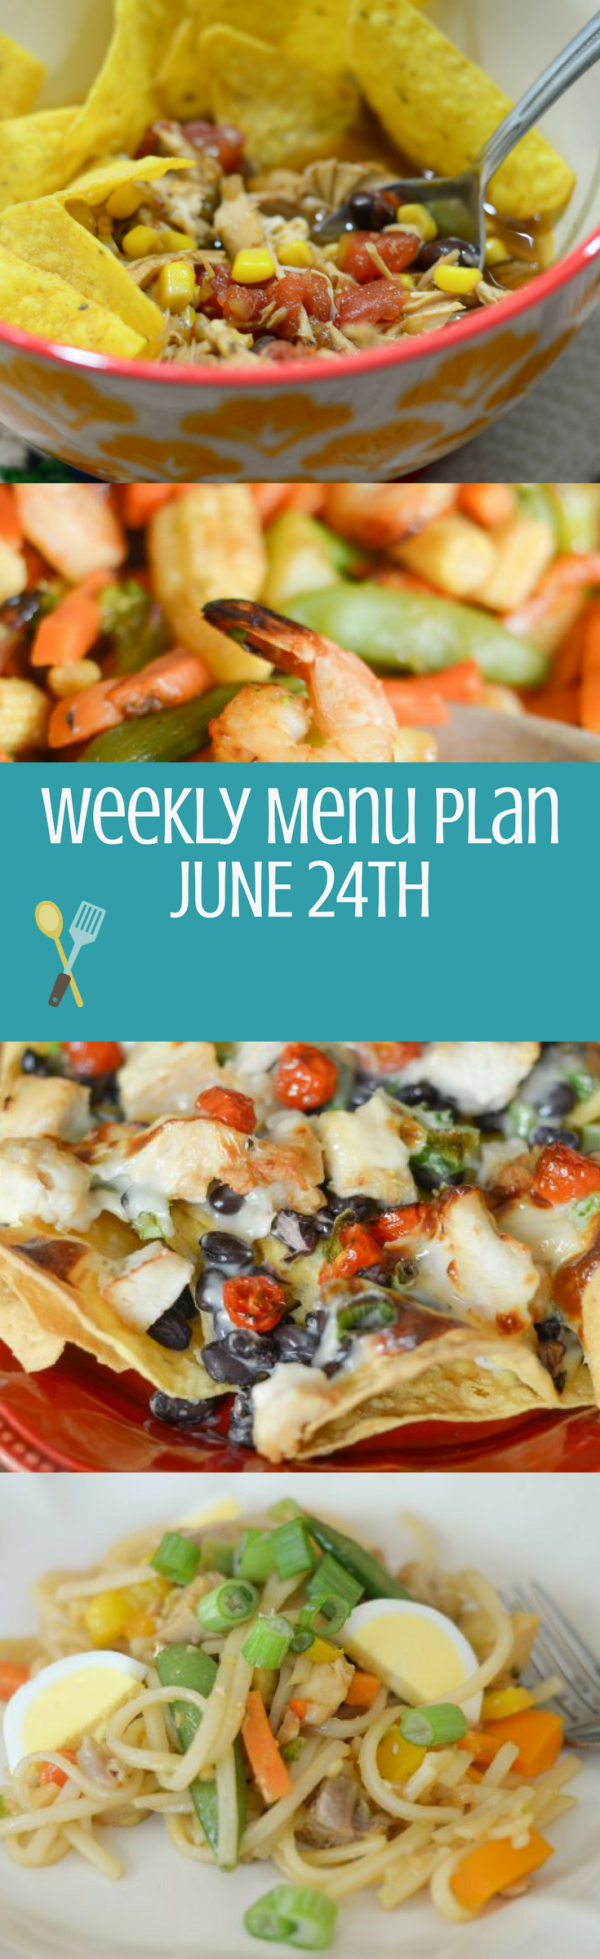 Weekly Menu Plan - Week of June 24th